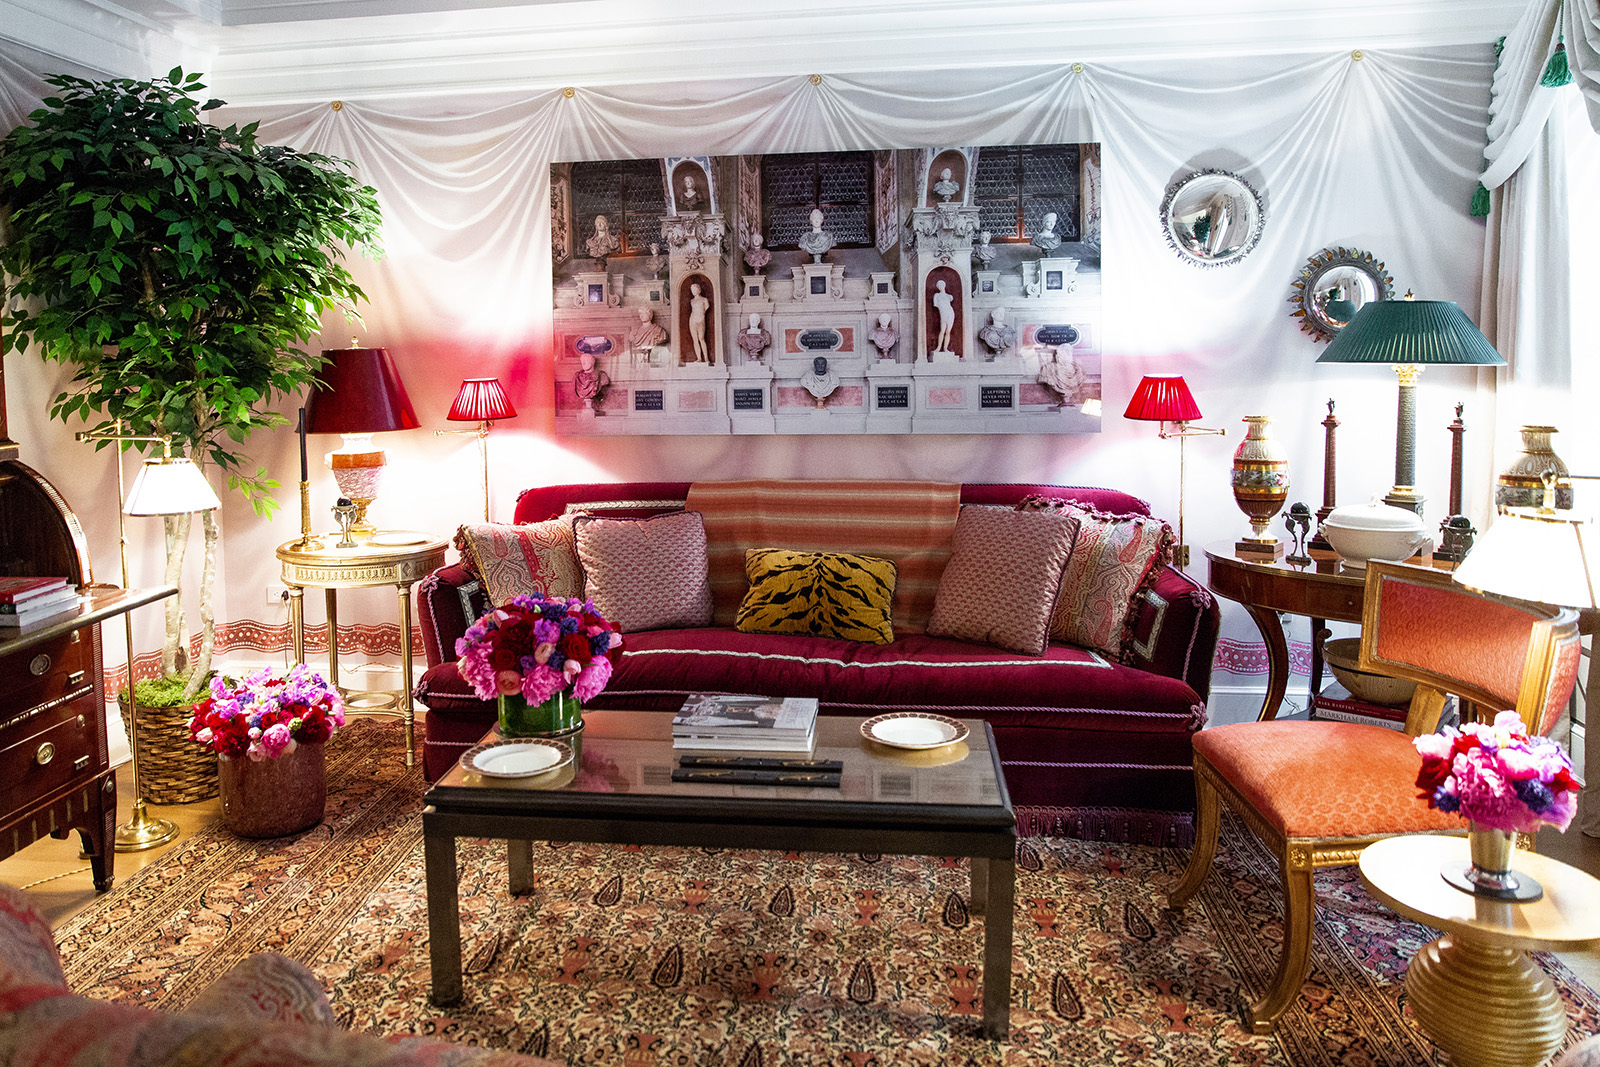 Kips Bay Decorator Show House 2018 Tineey